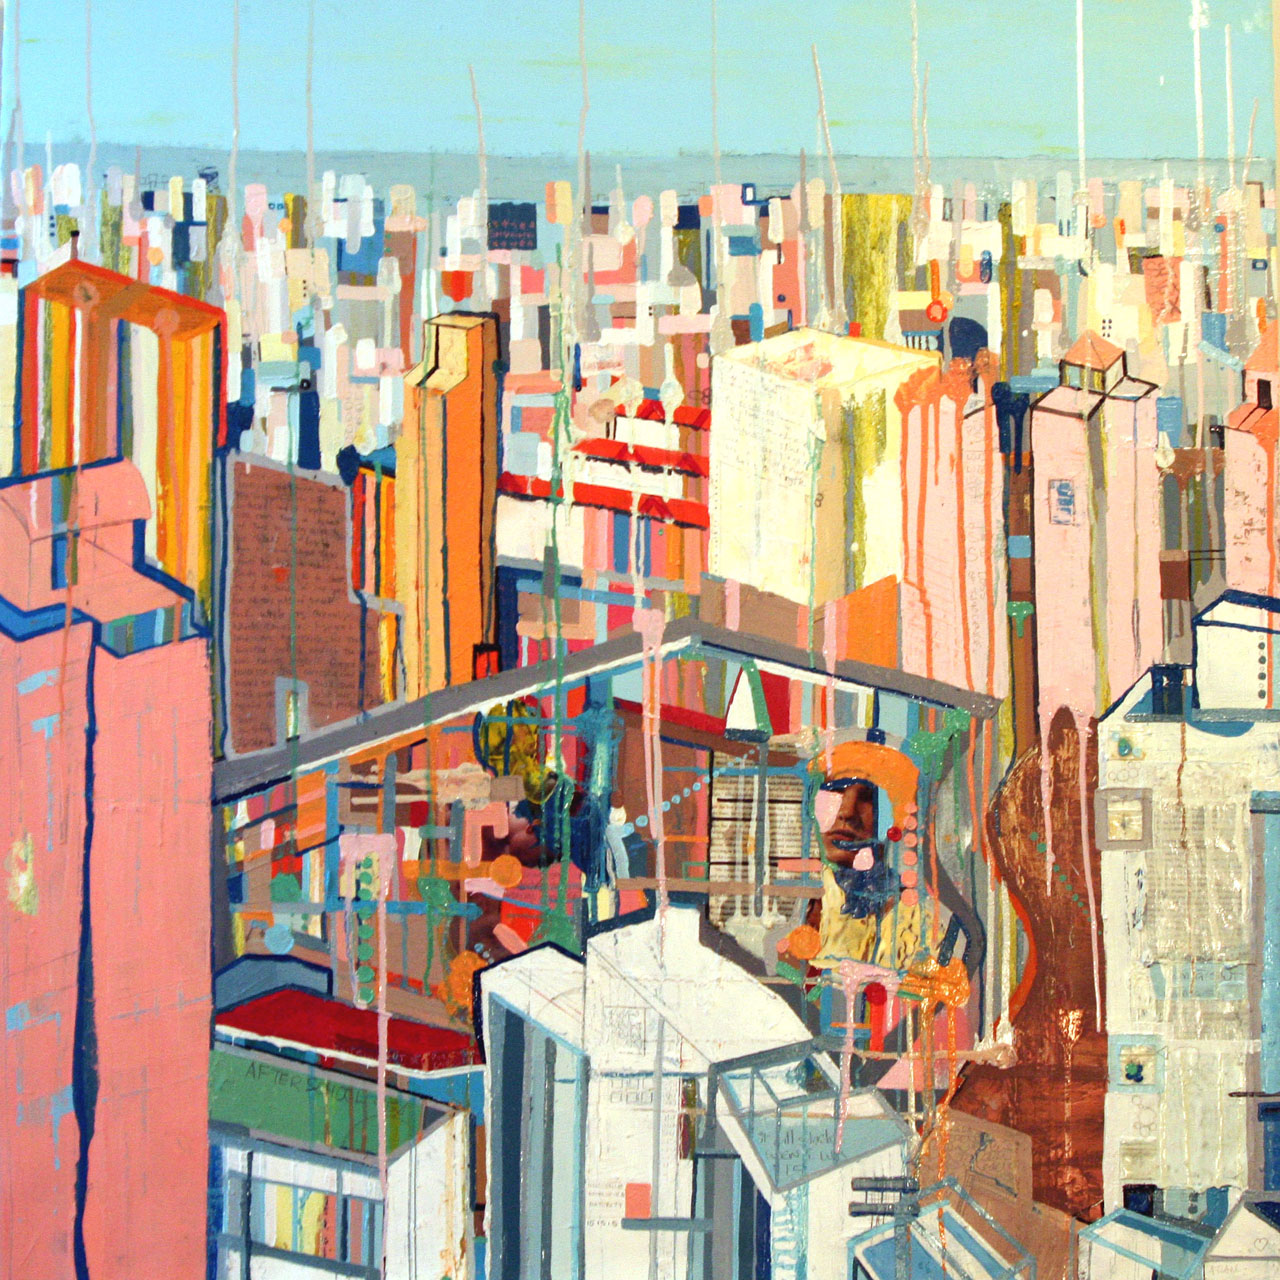 Building the Future, 2007,Oil and Mixed Media on canvas, 44 x 44 inches